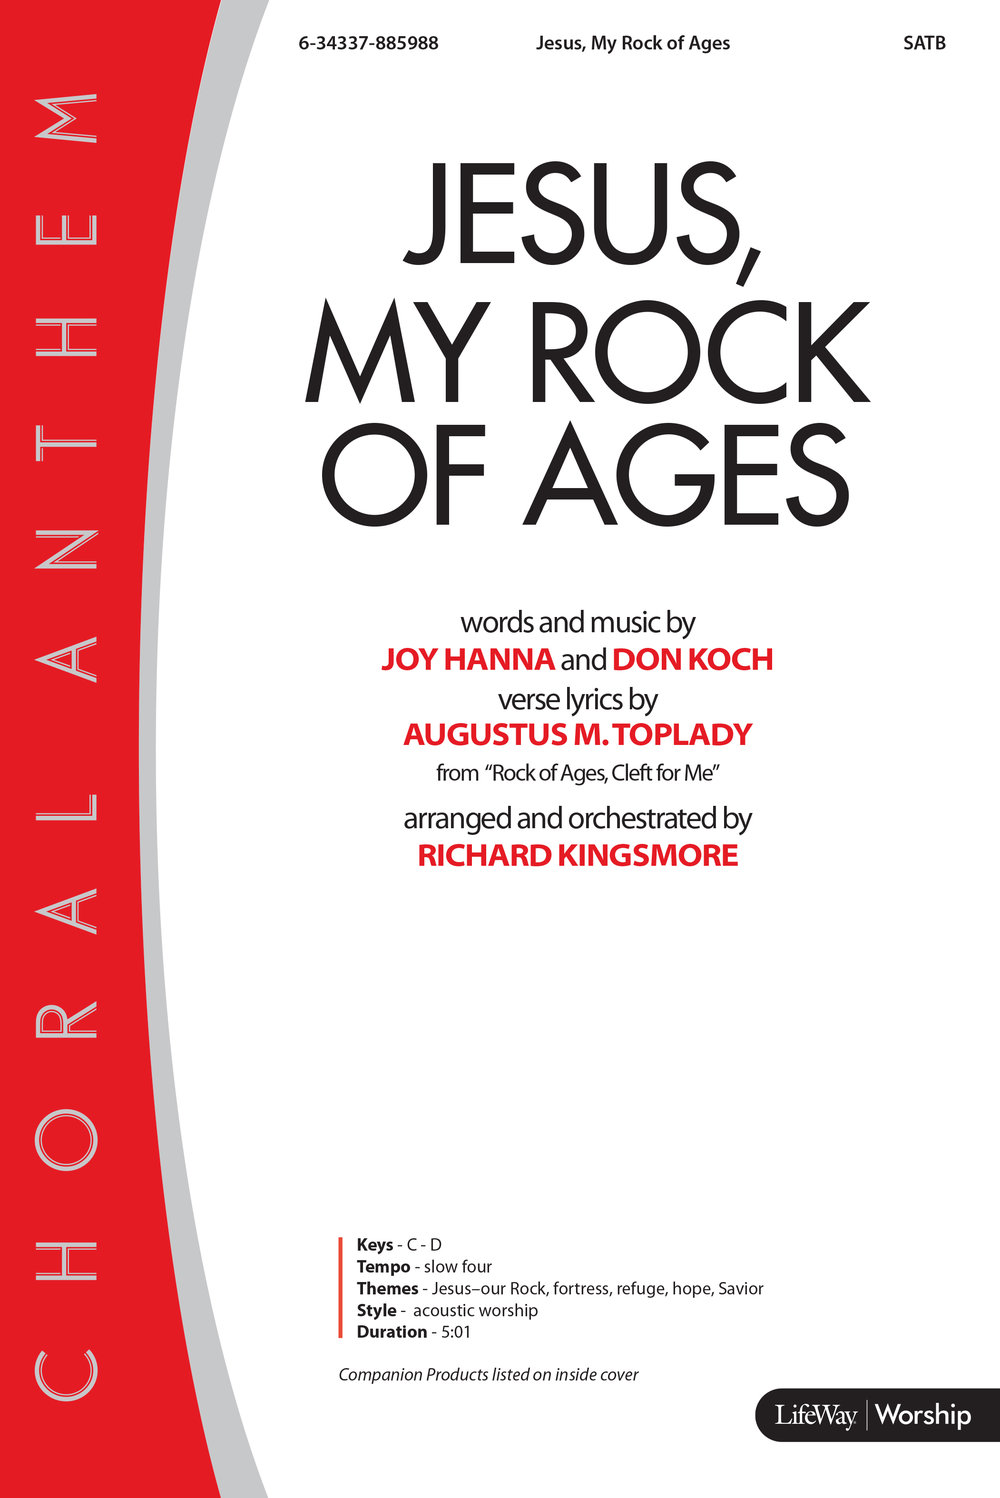 Jesus My Rock of Ages - Richard Kingsmore